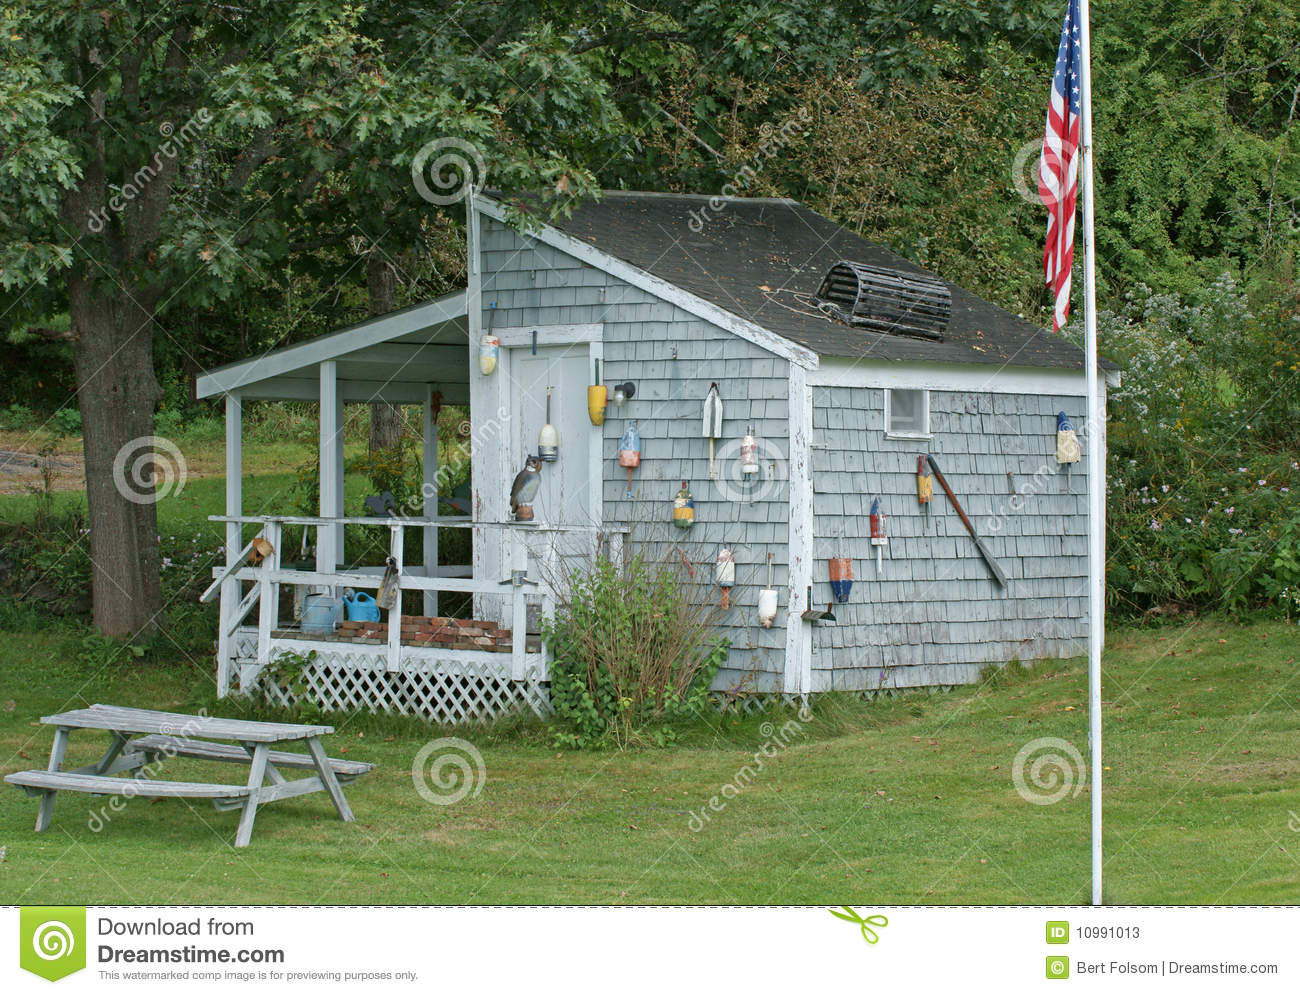 Decorated garden shed stock image image of flag trees 10991013 - Plans for garden sheds decor ...